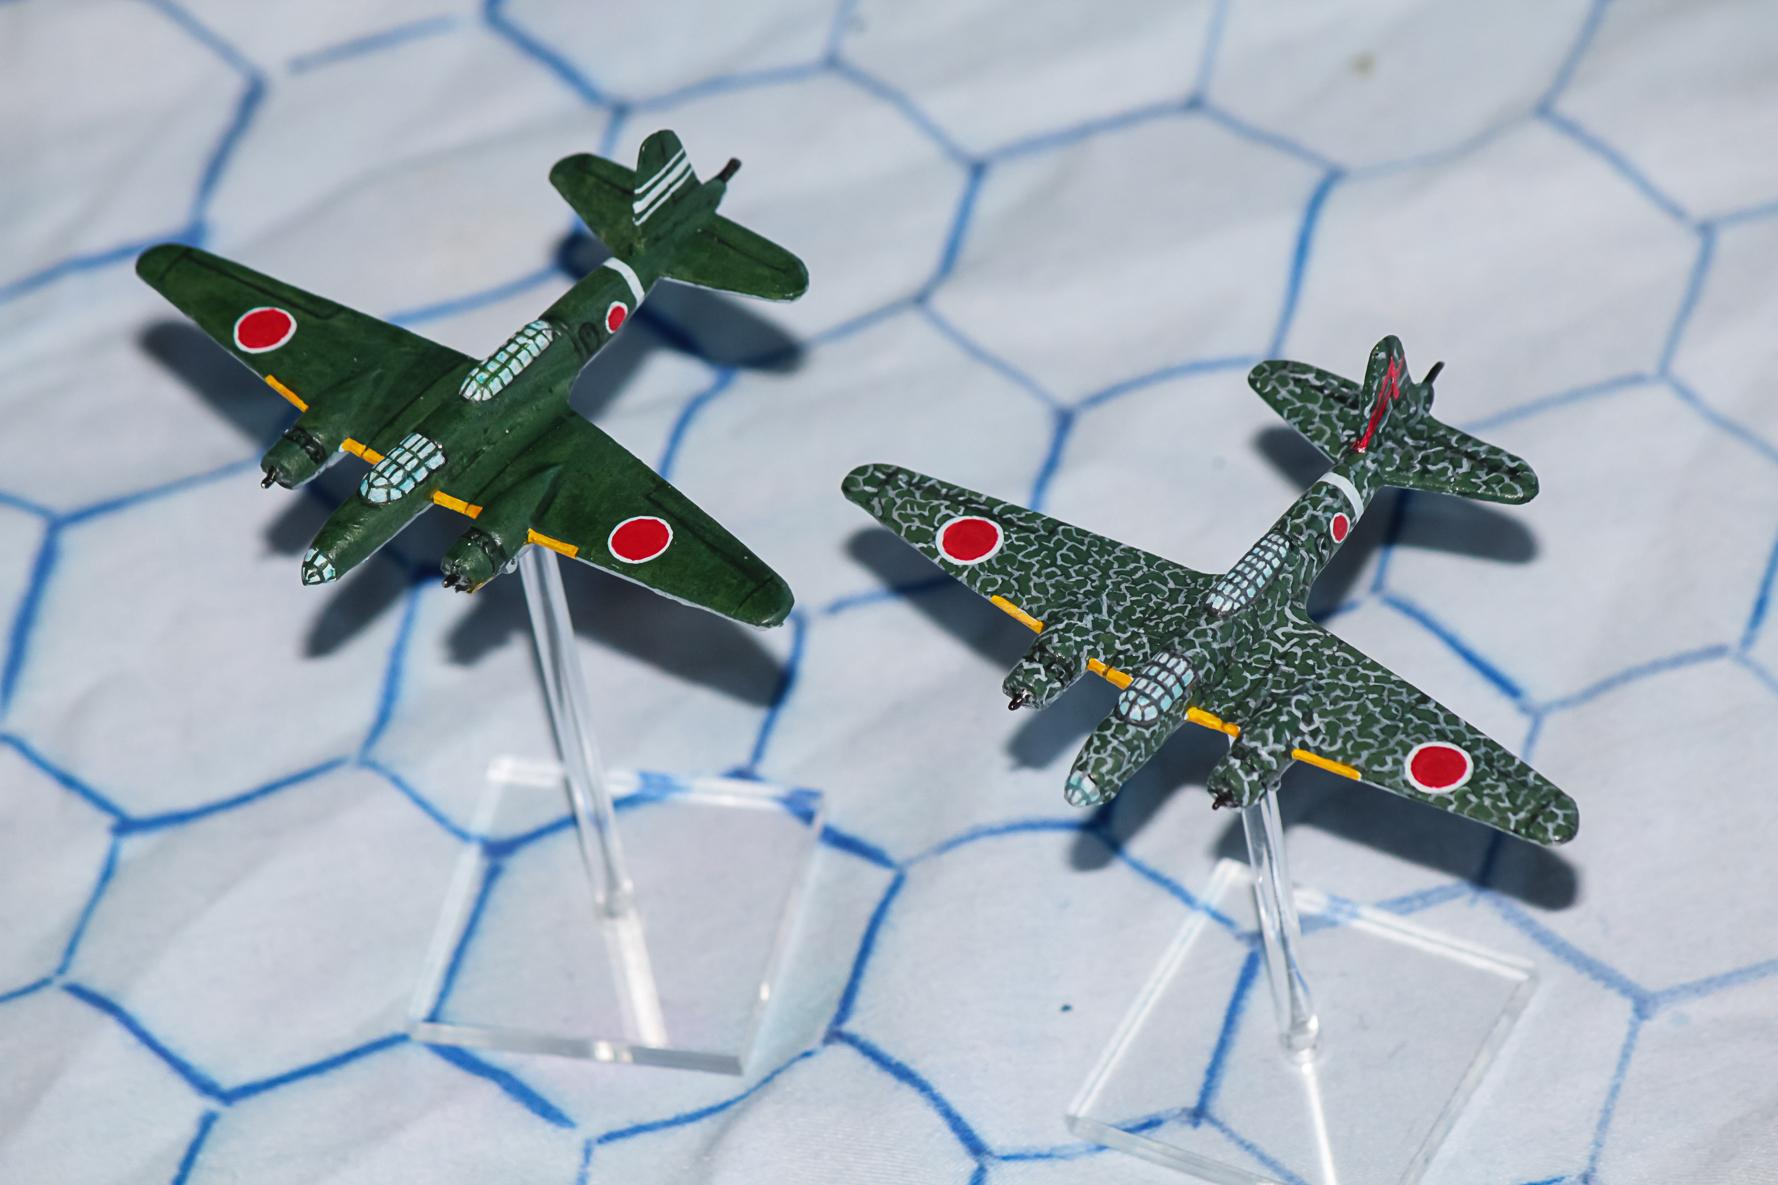 1:300 Scale, 6mm Scale, Air Combat, Airborne, Airplane, Fliers, Imperial Japan, Medium Bomber, World War 2